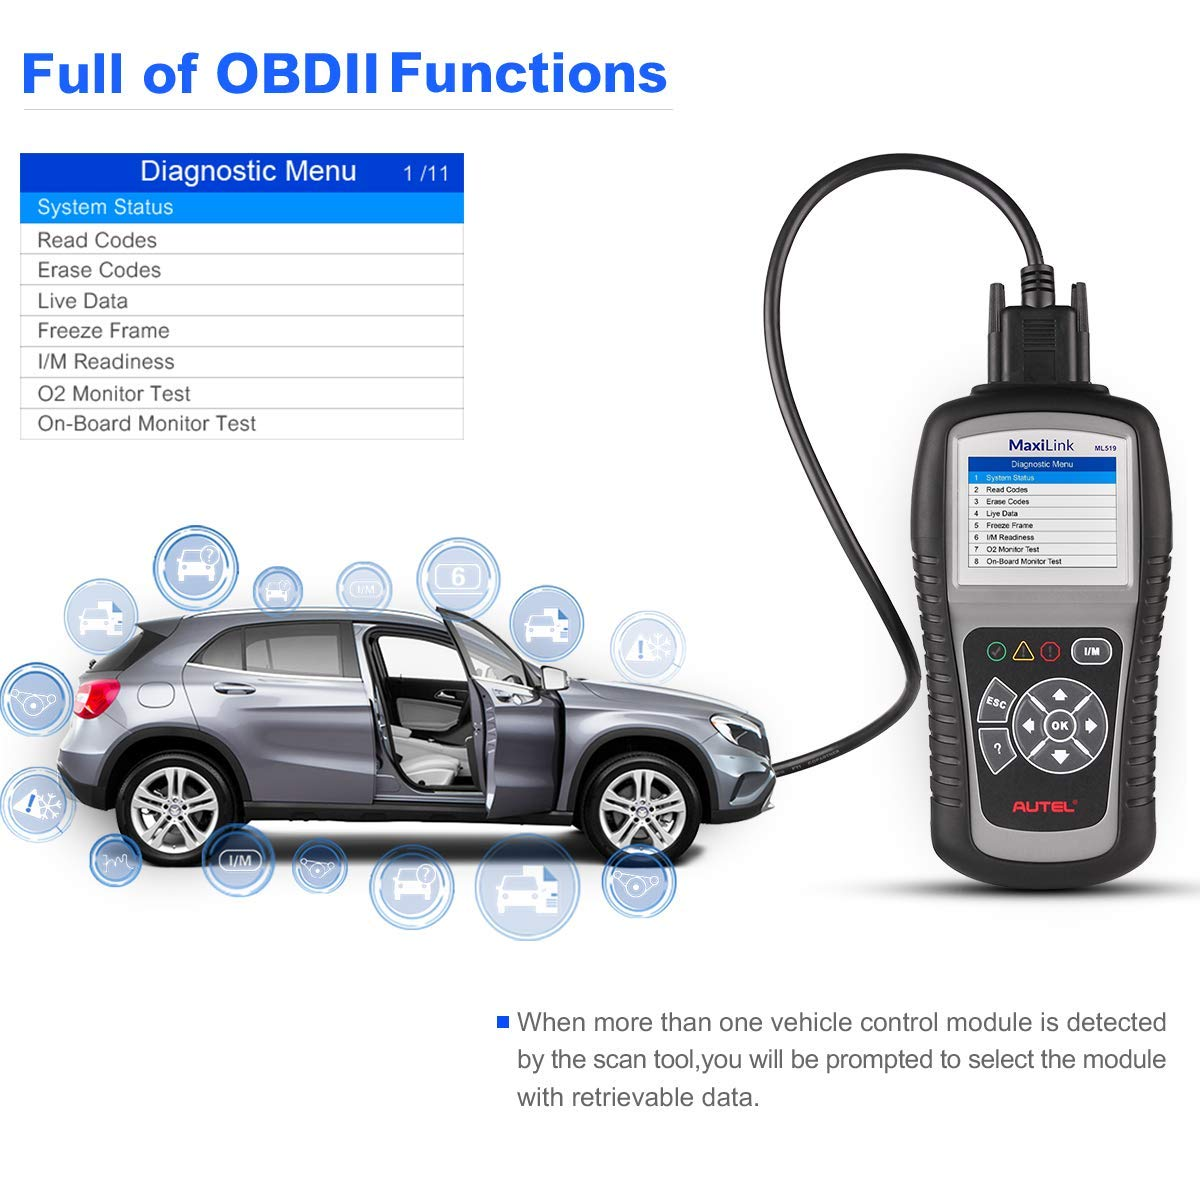 Autel MaxiLink ML519 OBDII/EOBD Scanner Enhanced OBD II Mode 6,Code Reader with The Same Function as al519 by Autel (Image #2)